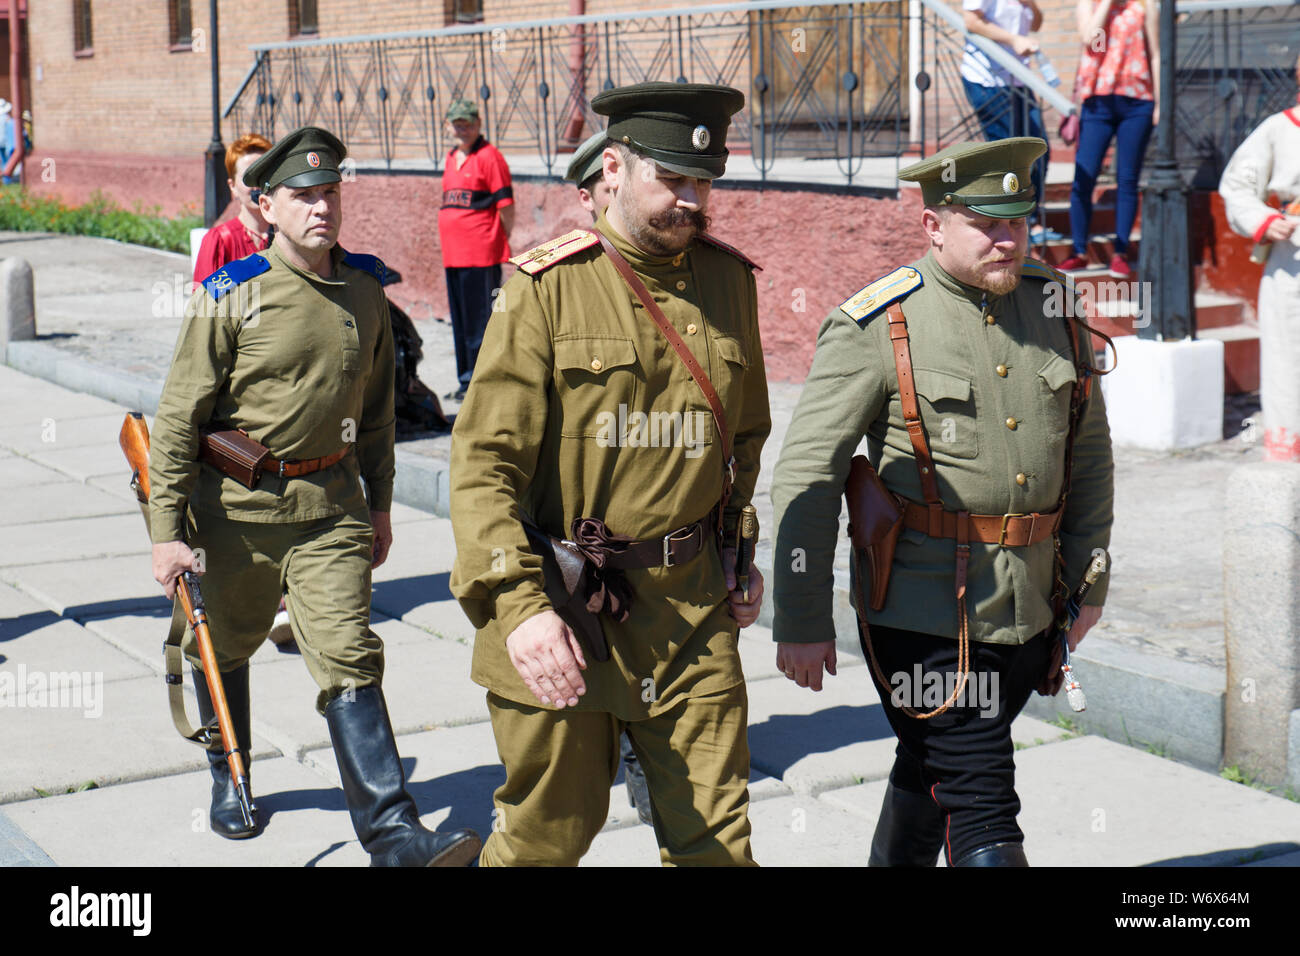 Novokuznetsk, Russia 07.07.2019 G., the Staff of the historical club in the form of the Russian soldier, the events of the First world war. editorial Stock Photo